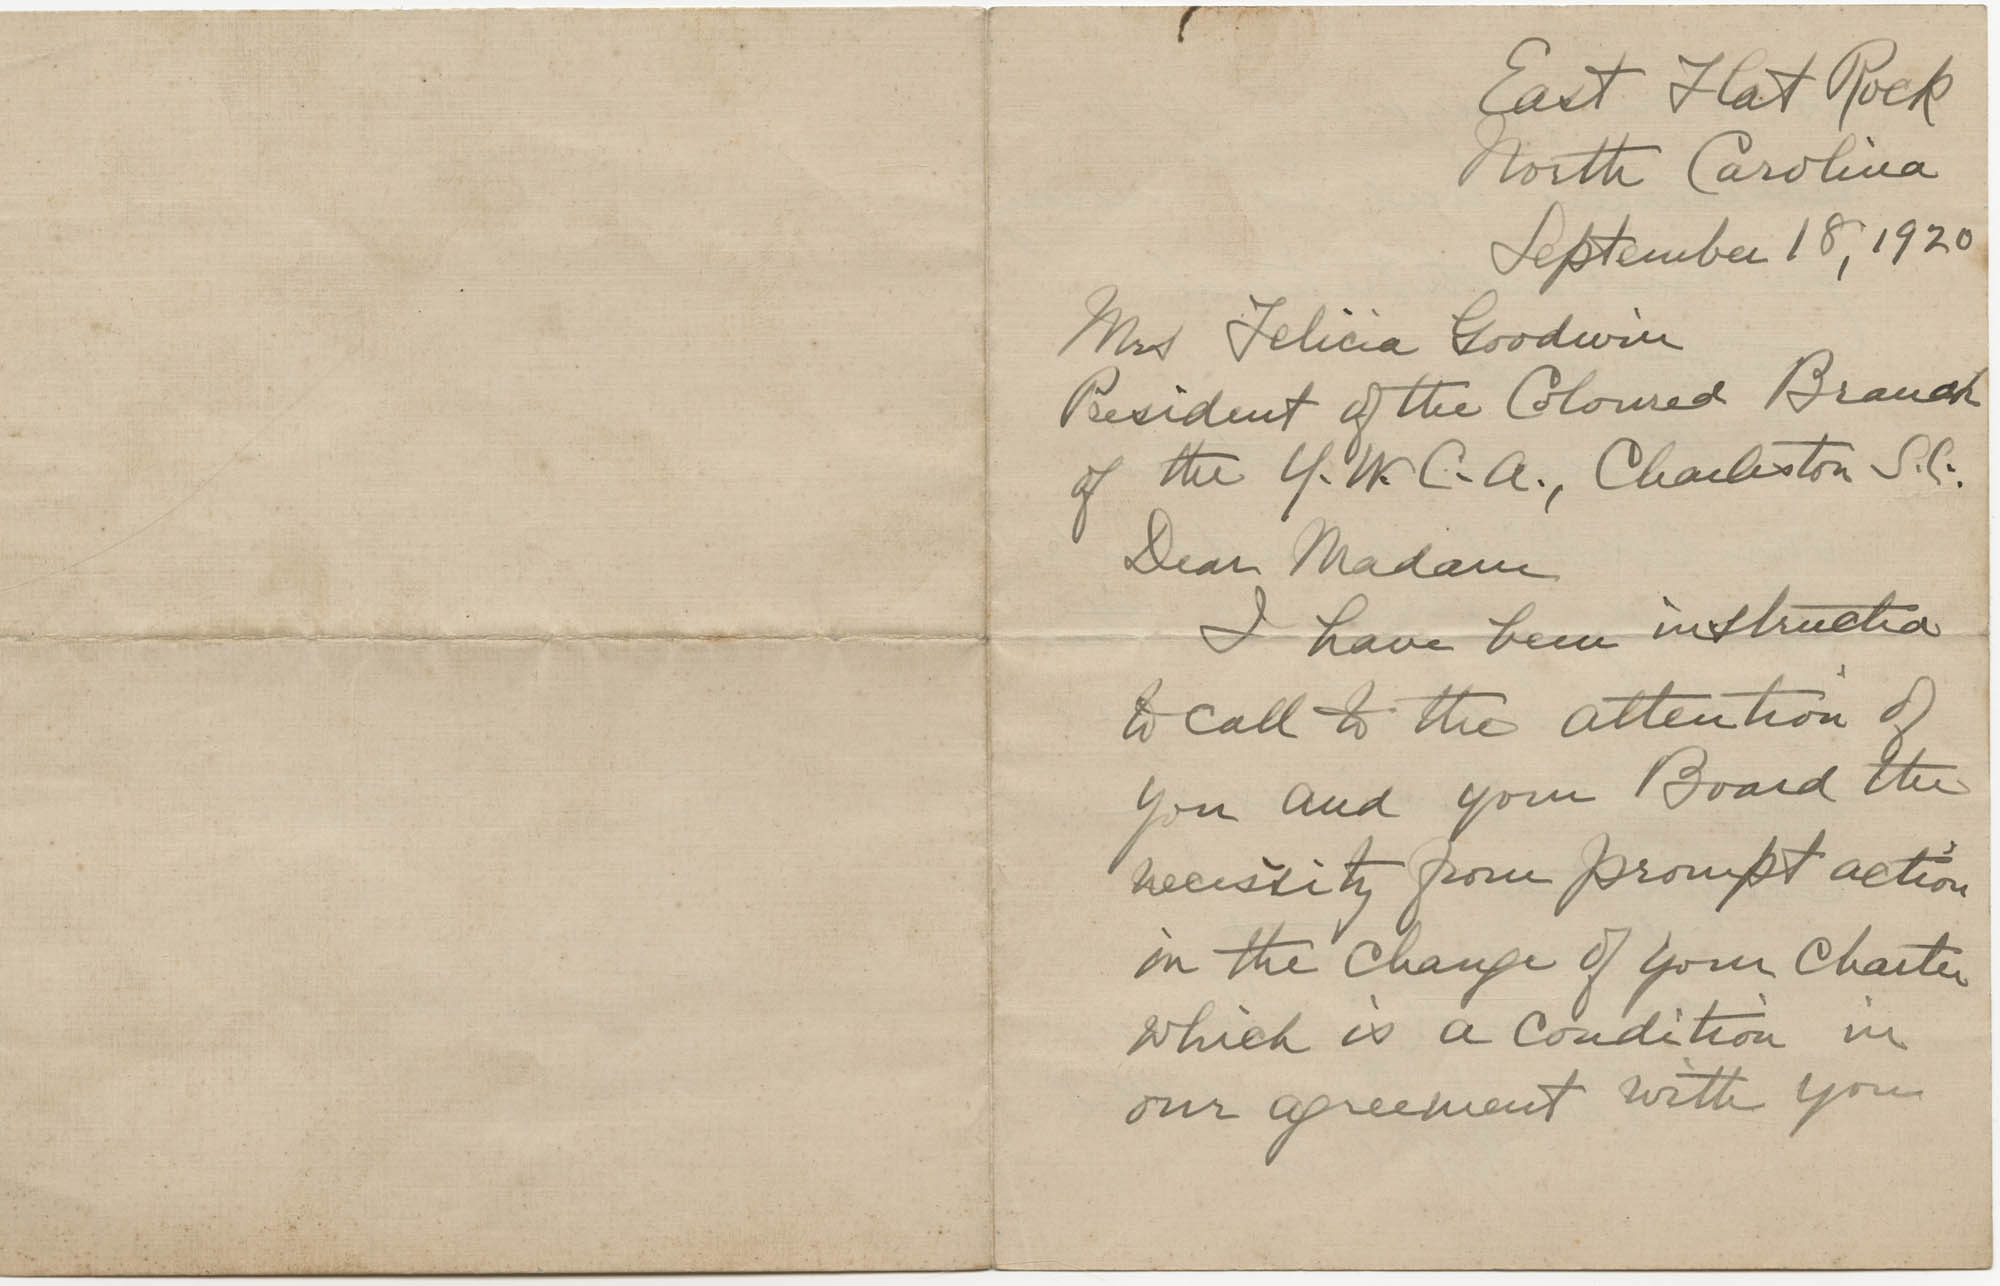 Letter from Louisa C. Stoney to Felicia Goodwin, September 18, 1920